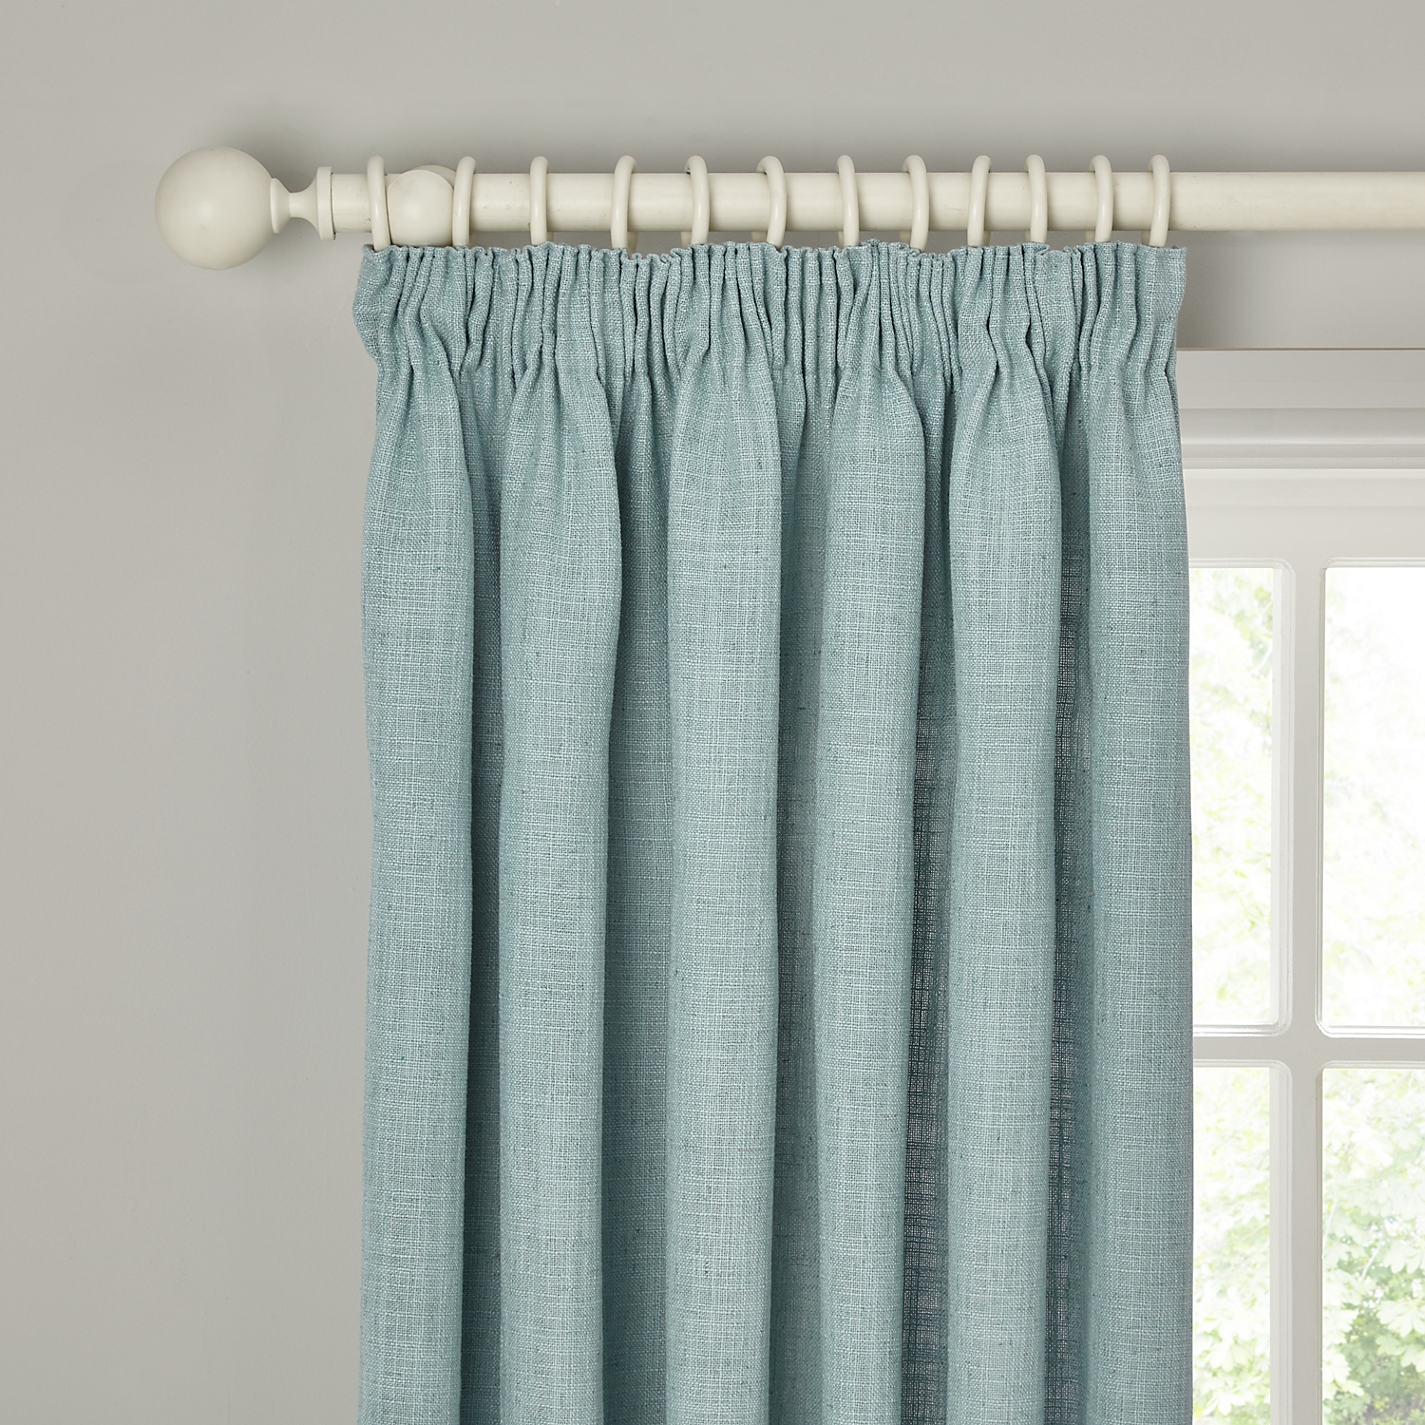 Pencil Pleat Curtains Buying Guides Egovjournal Home Pertaining To Pencil Pleat Curtains (Image 10 of 15)